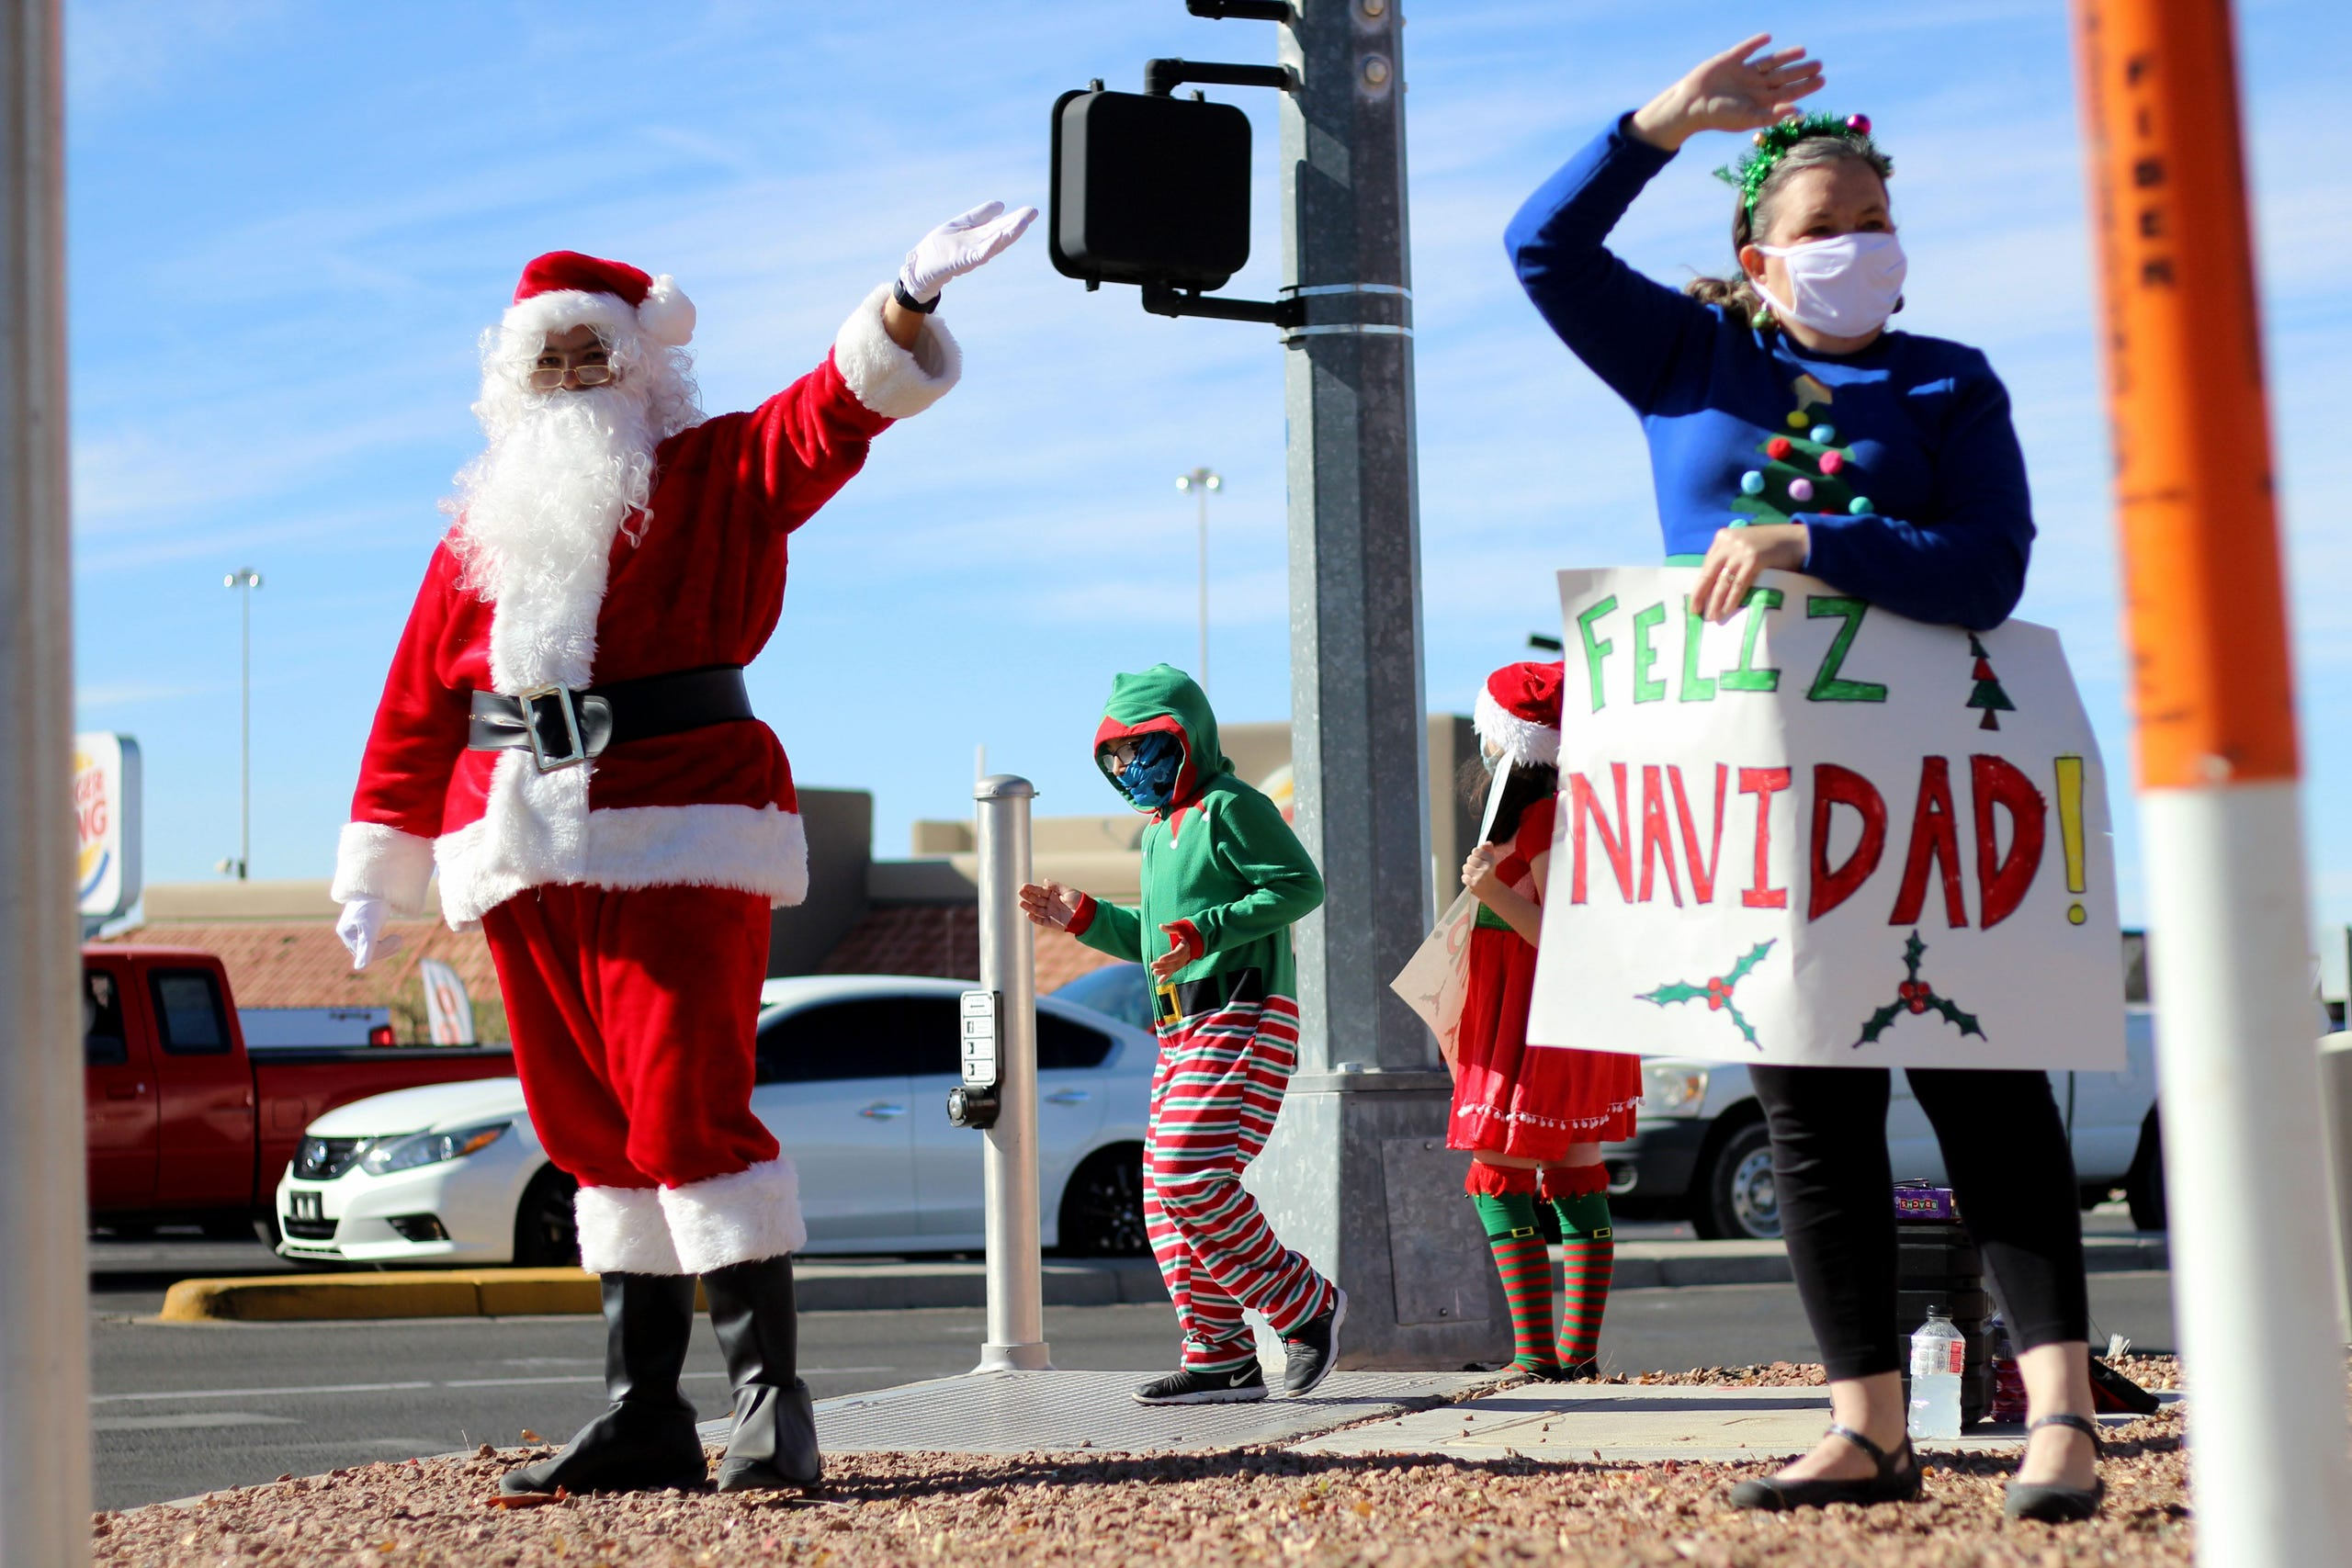 From left, Dennis, Kephas, Miranda and Toni Garcia stand at the corner of Lohman Avenue and Telshor Boulevard to spread holiday cheer on Dec. 21. The family blasts holiday music and waves to cars as they drive by. Dennis said he wore the costume to read to his wife Toni's first-grade class last week. The family then decided to head out to the busy intersection and spread Christmas cheer.Curcessanta10